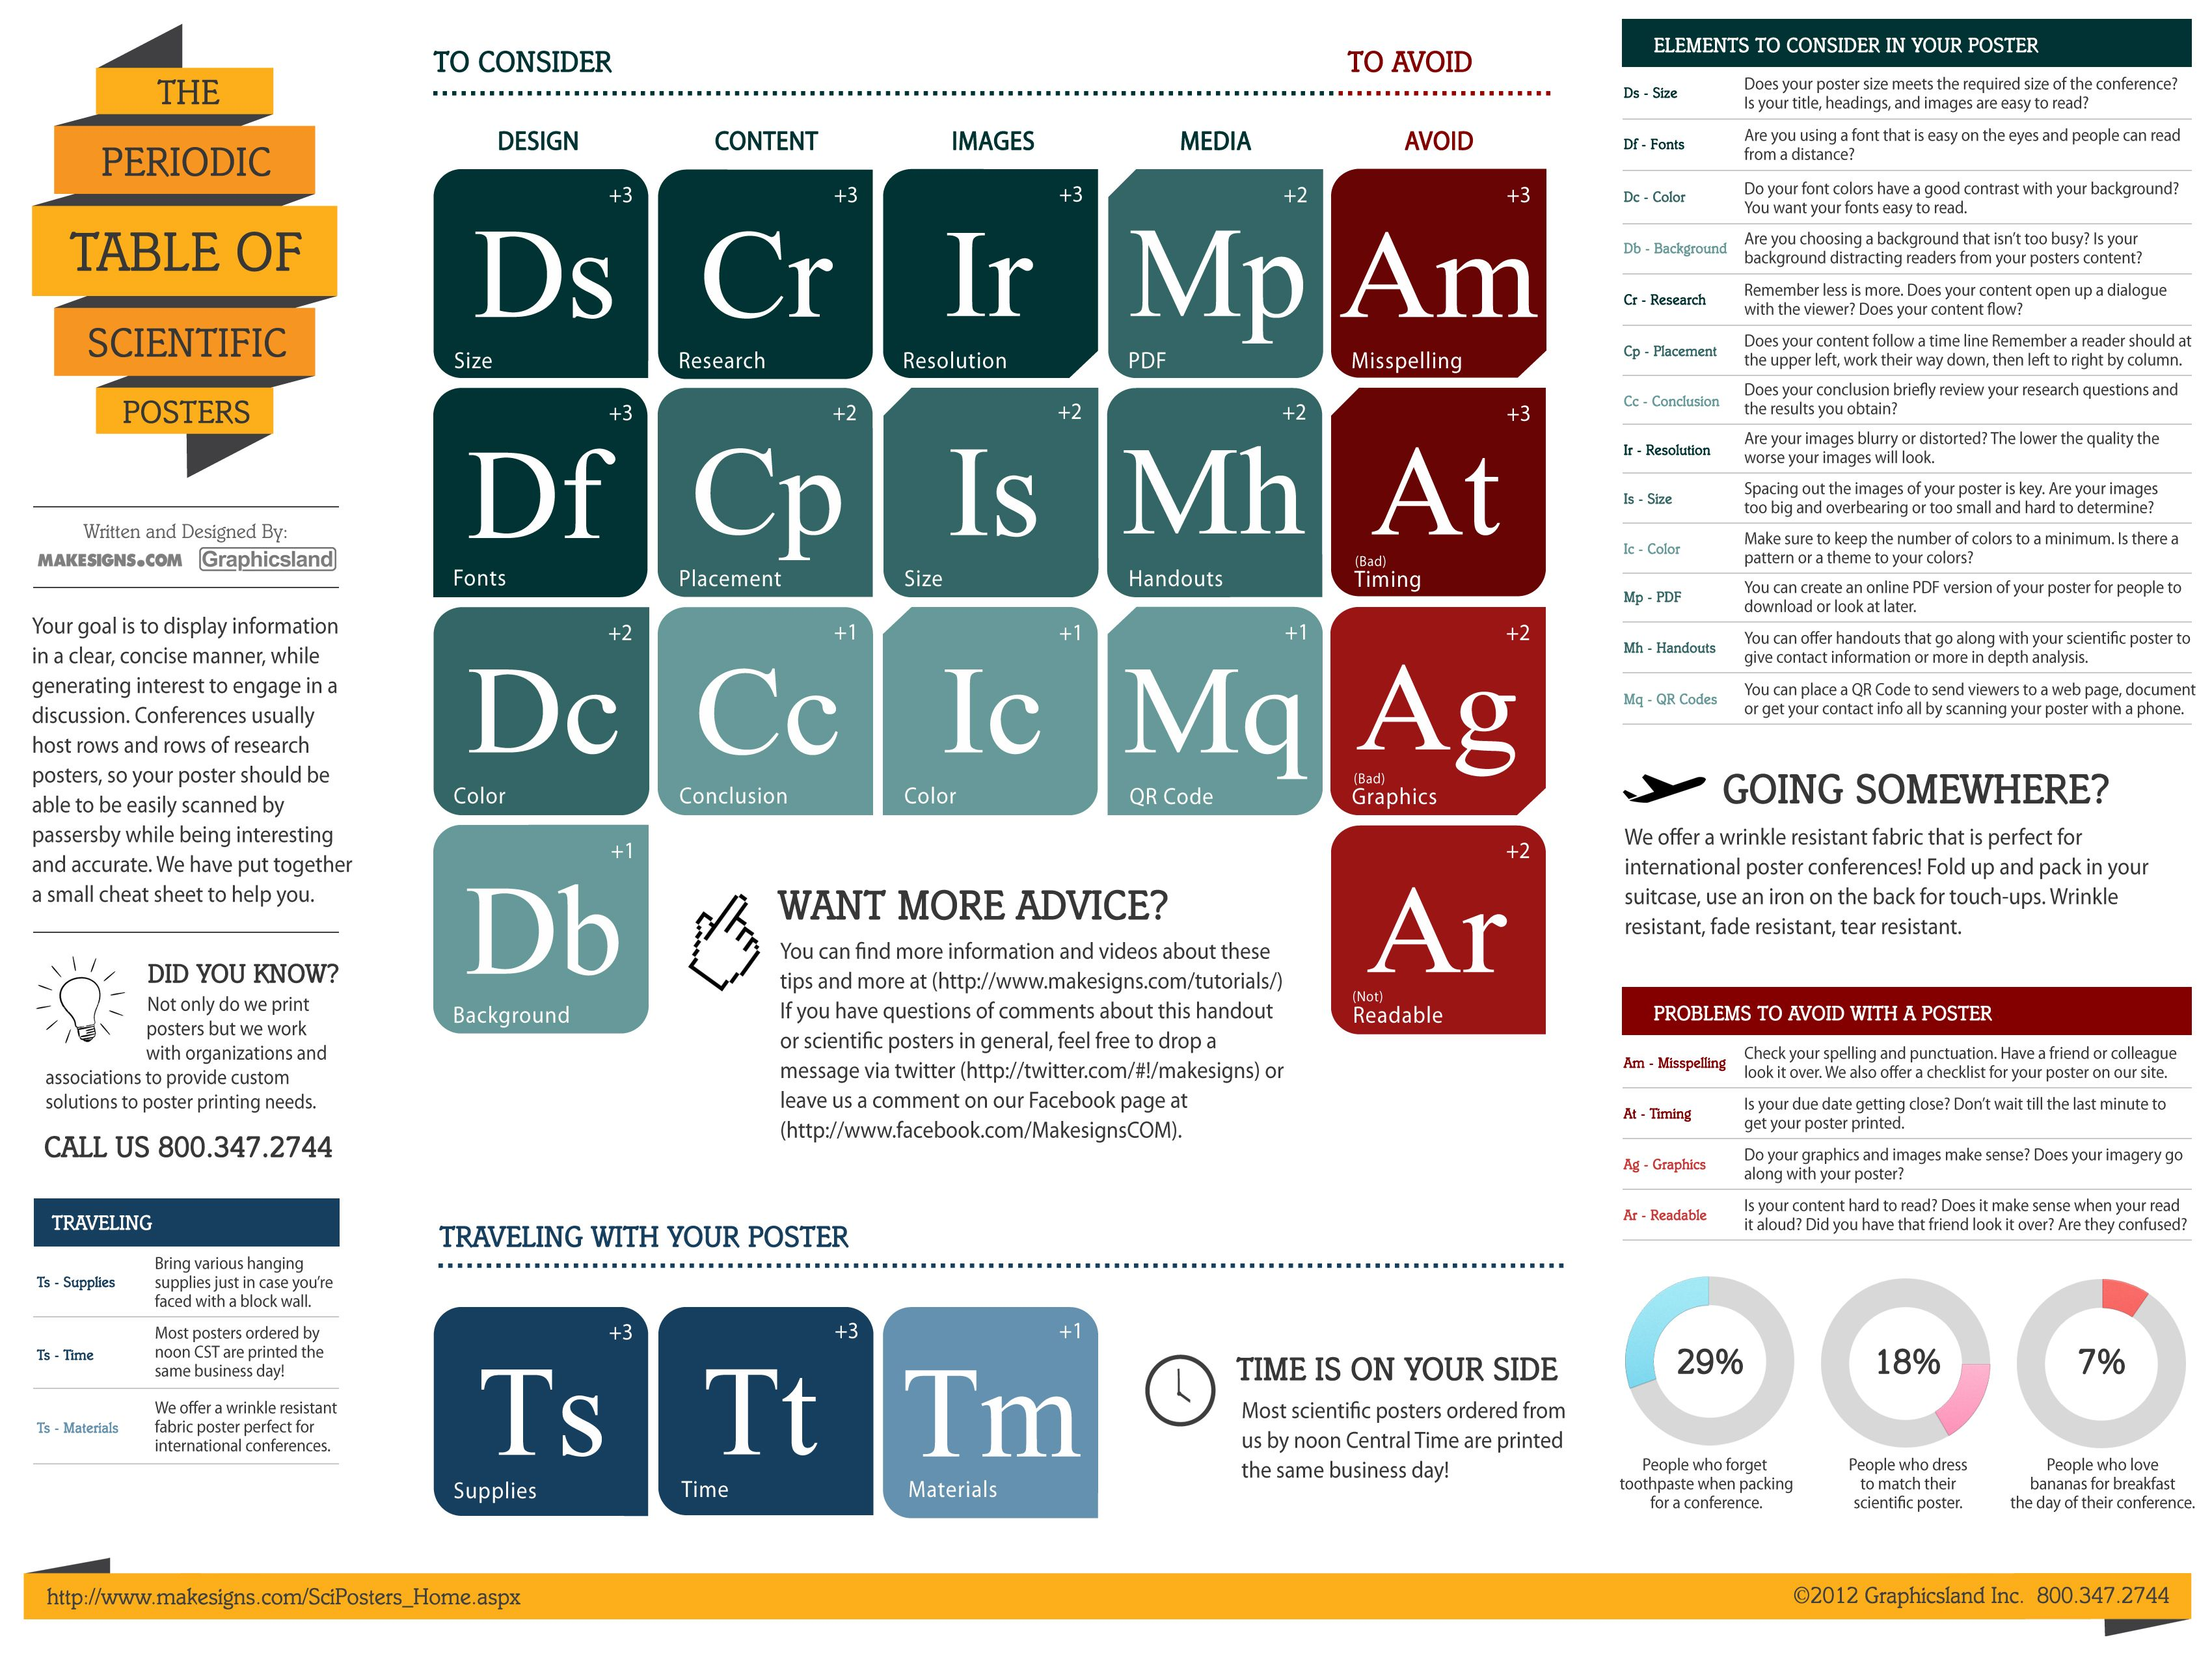 Research poster font size